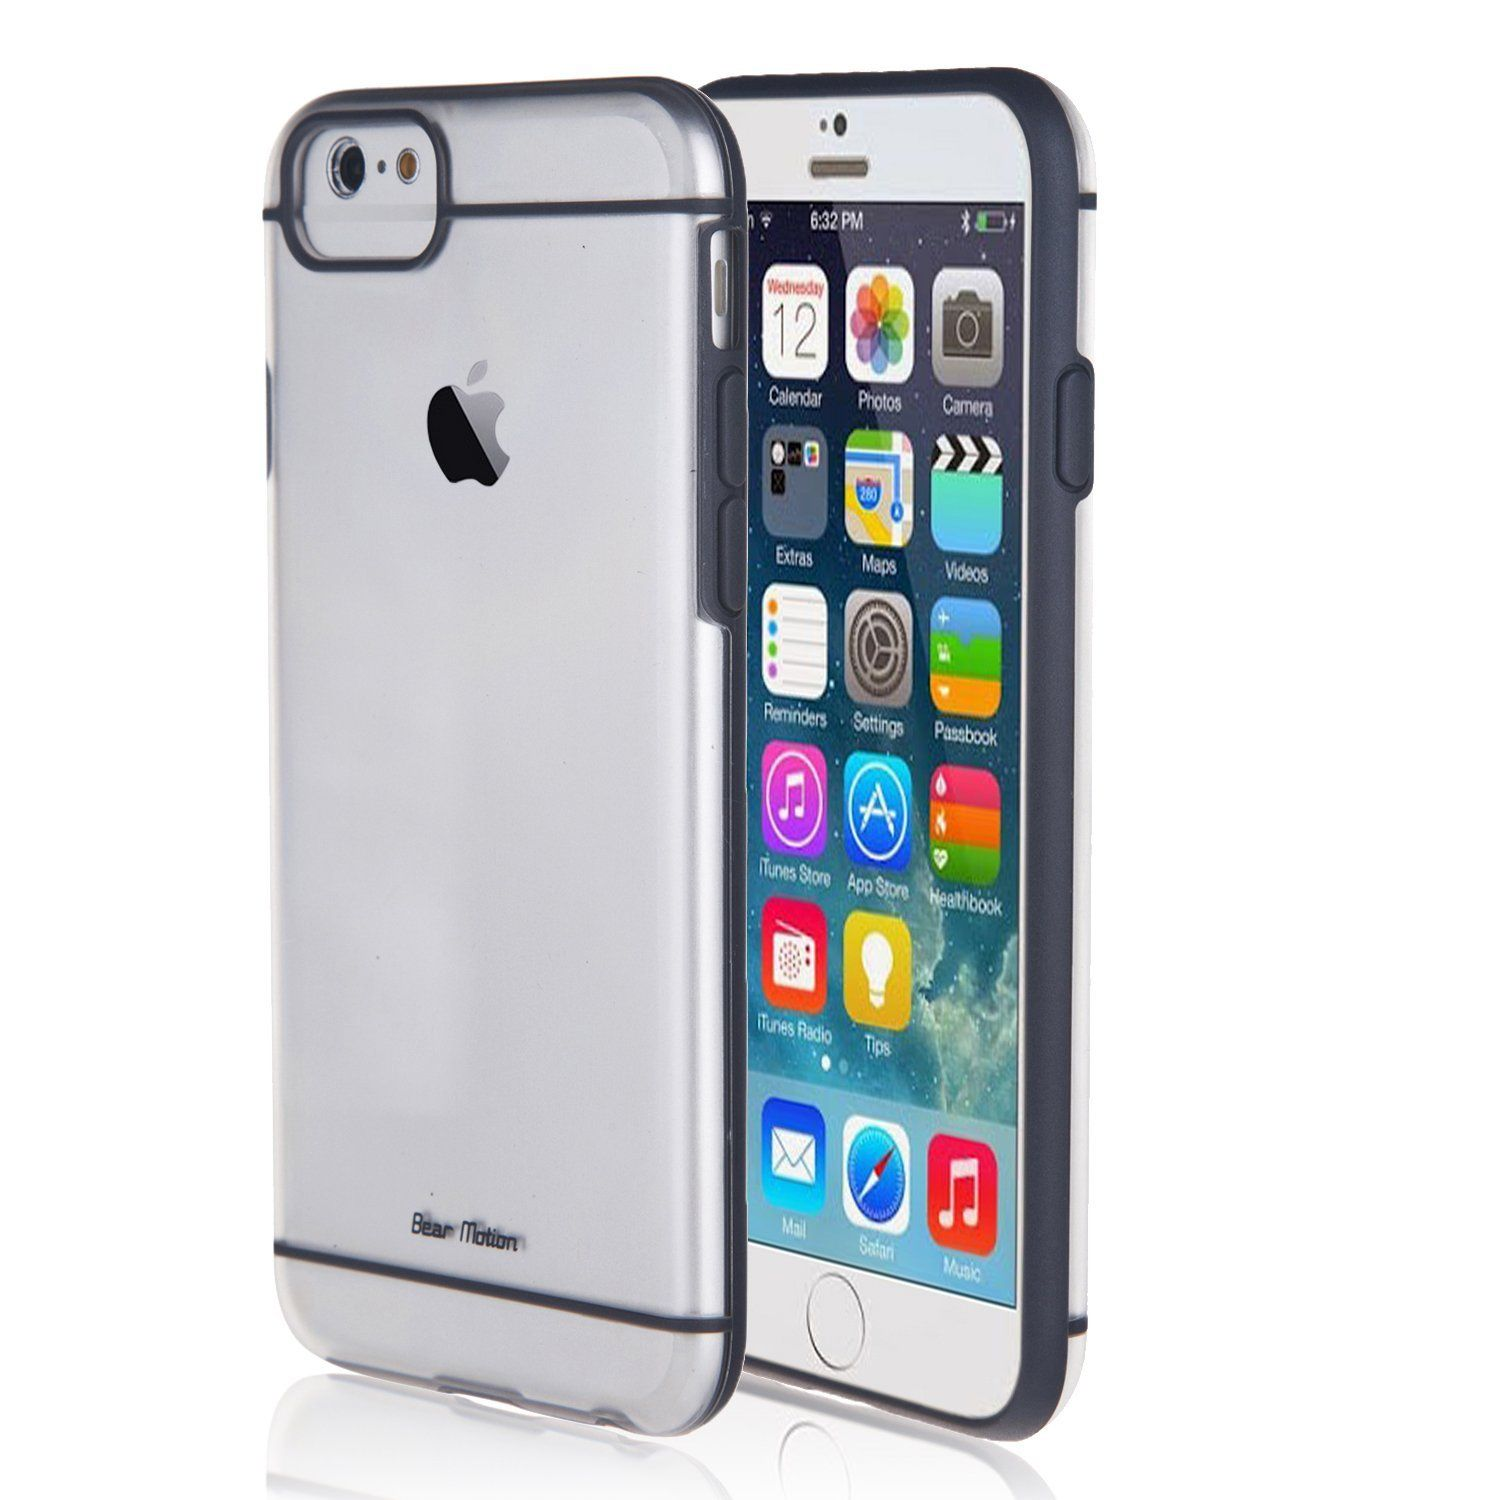 Back cover case cool iphone 6 cases iphone 6 plus case